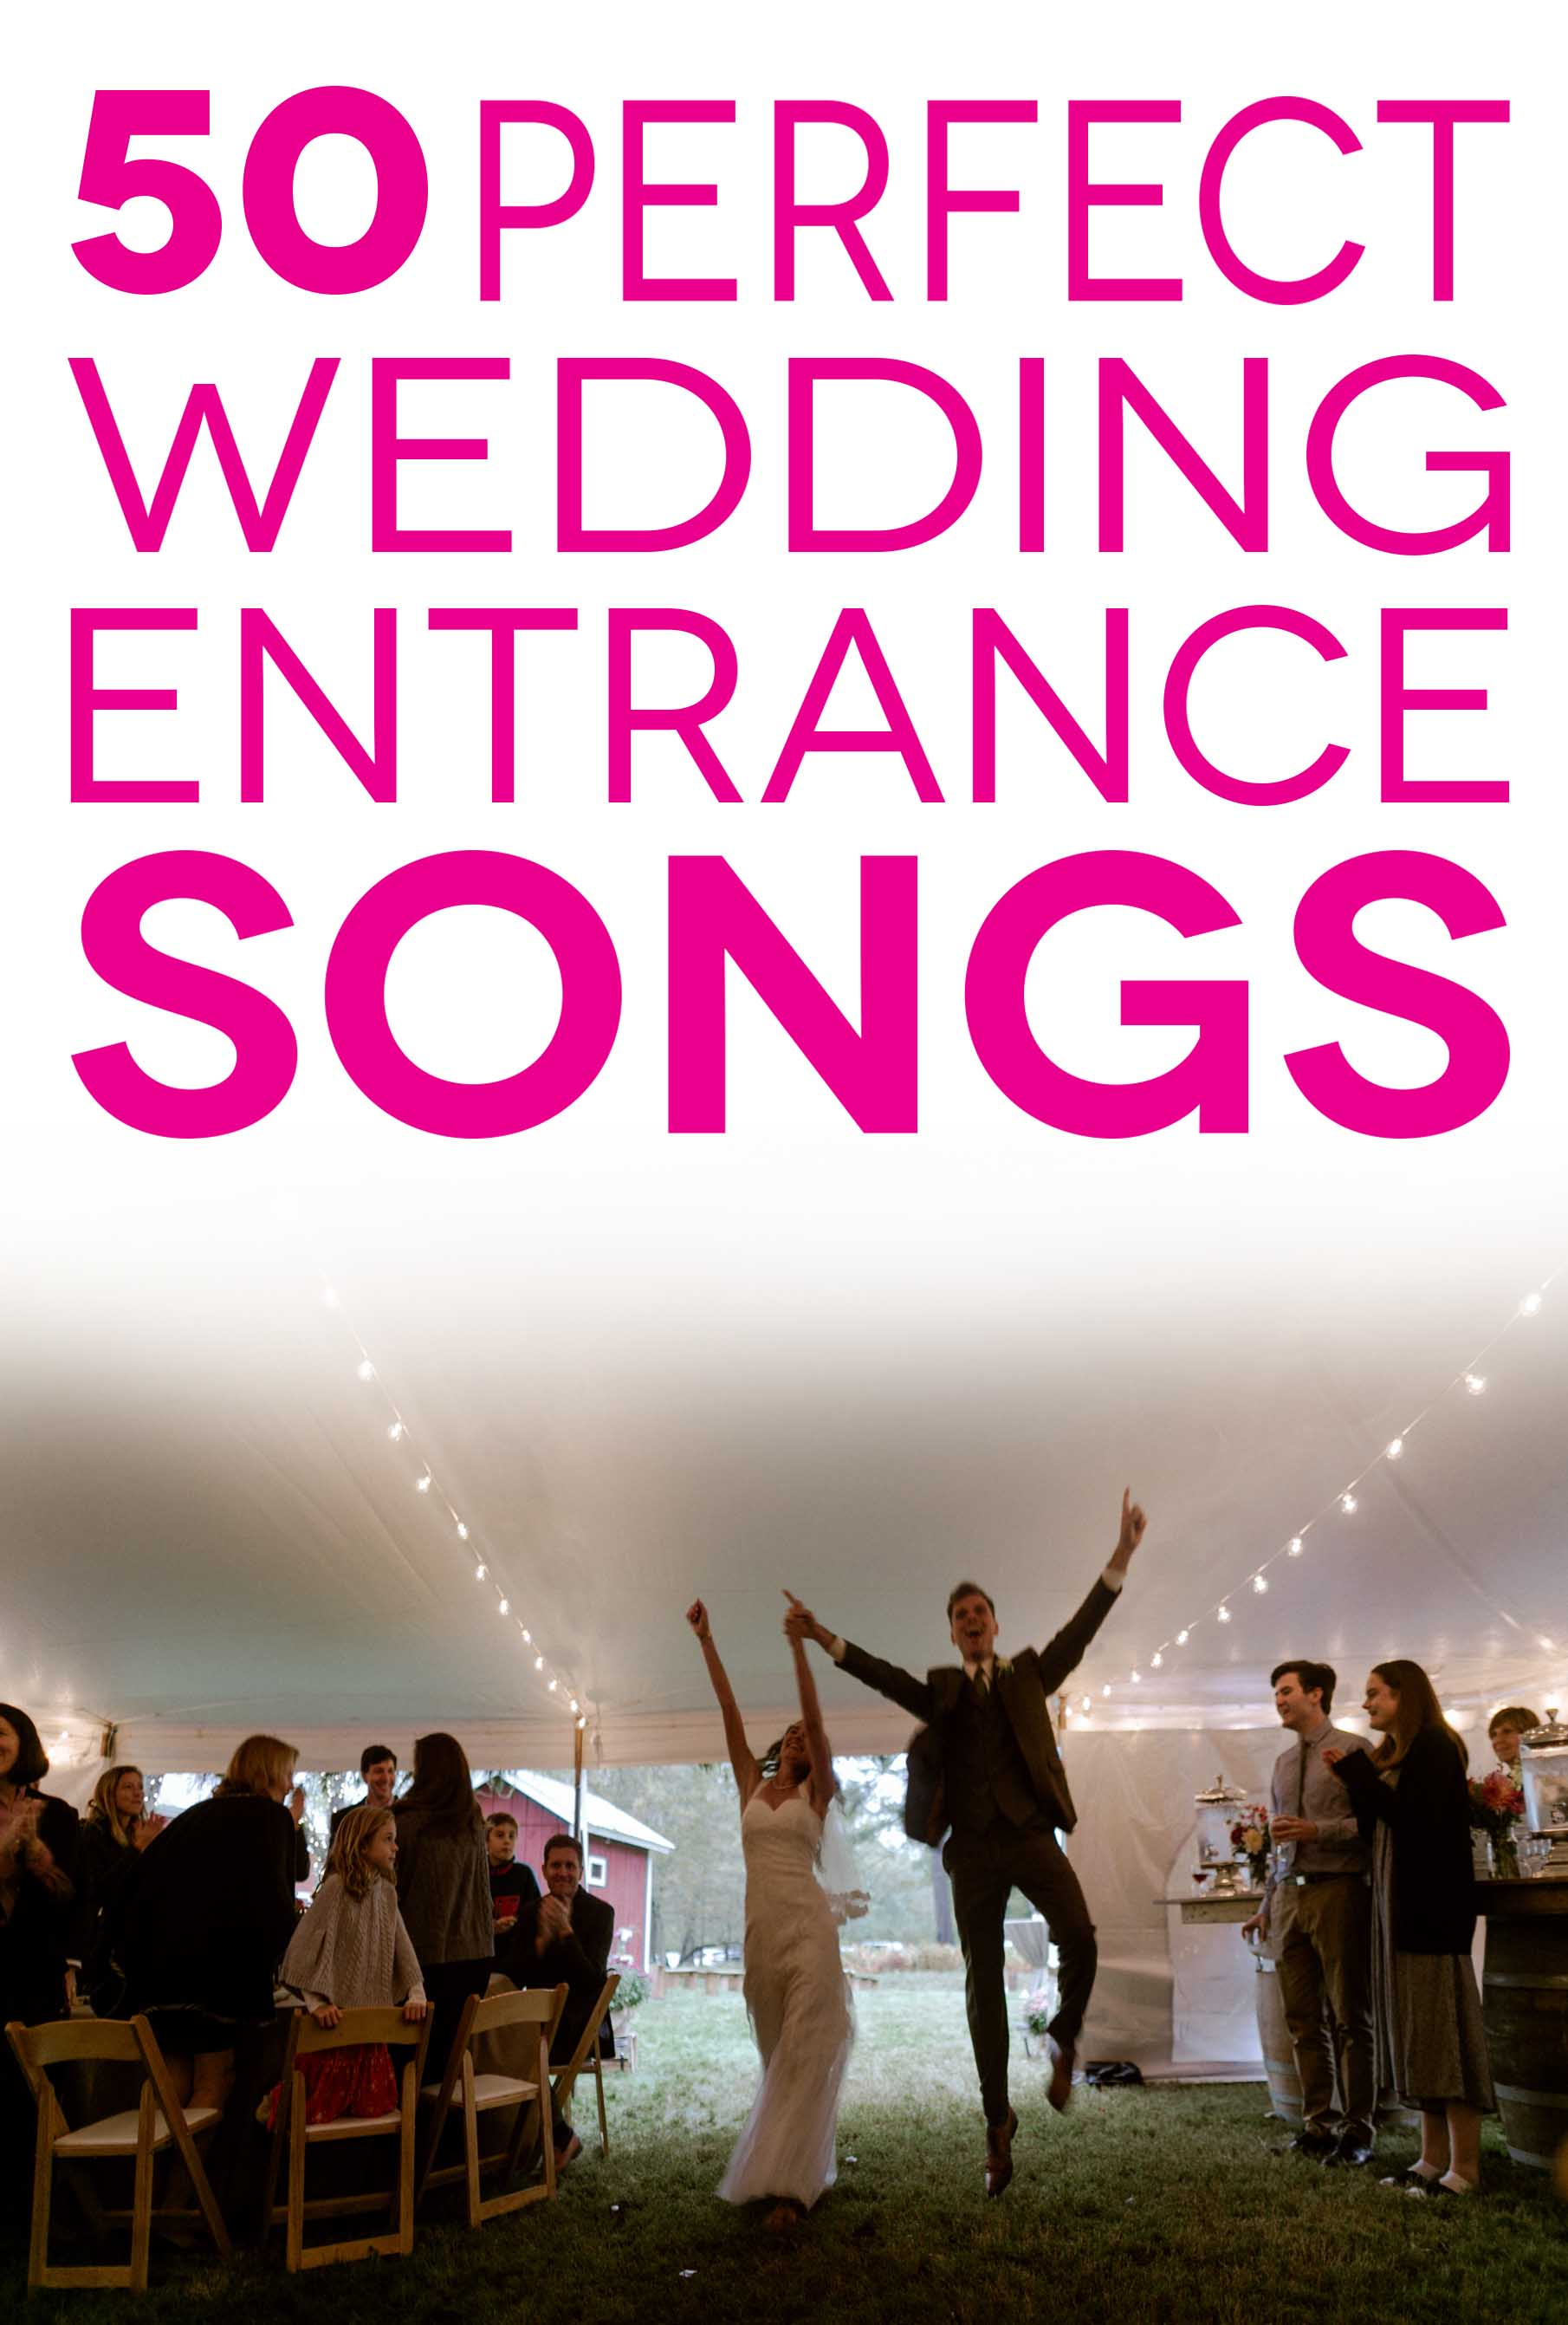 Innovative Wedding Entrance Pink Lettering Overlaying A Photo Ofa Couple Wedding Entrance Songs To Get Party Started A Practical Wedding Bridal Party Entrance Songs 2015 Bridal Party Entrance Songs Ch art Bridal Party Entrance Songs